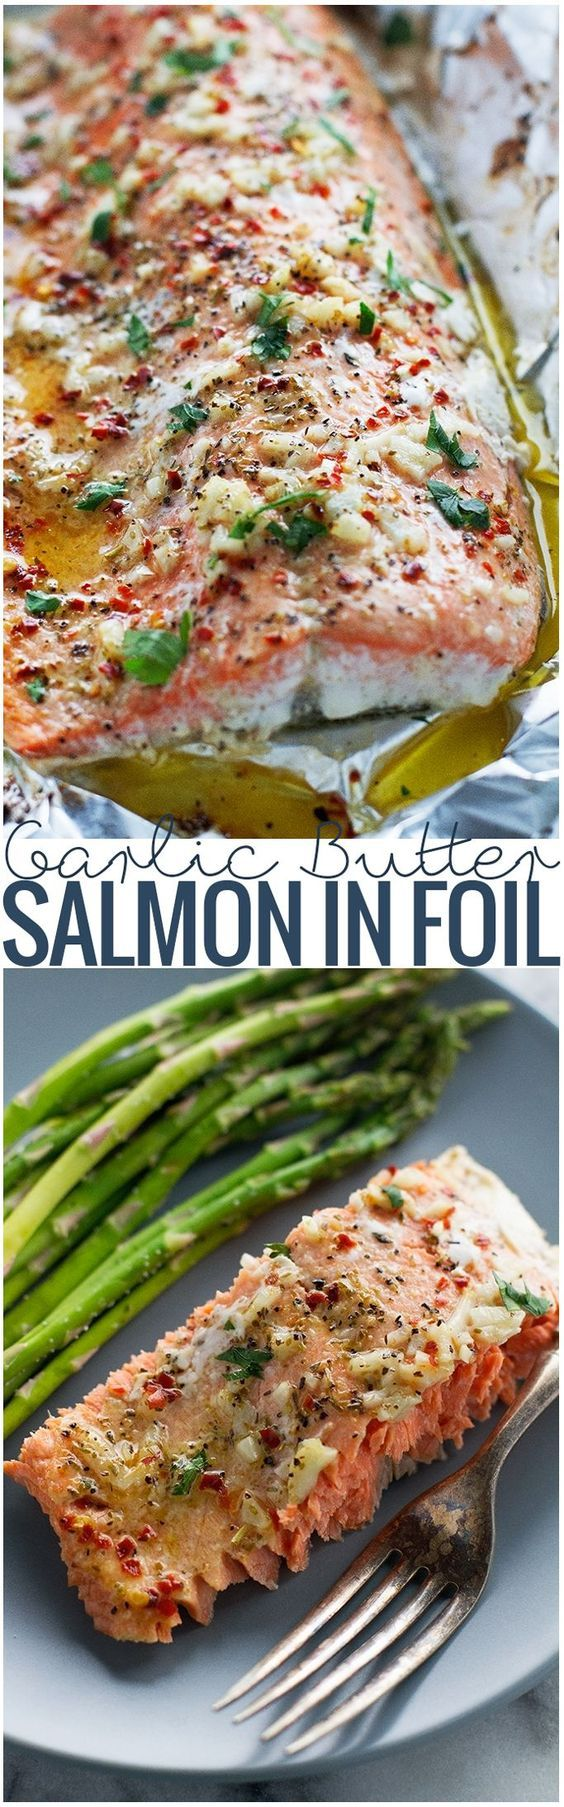 how to cook salmon in oven with butter